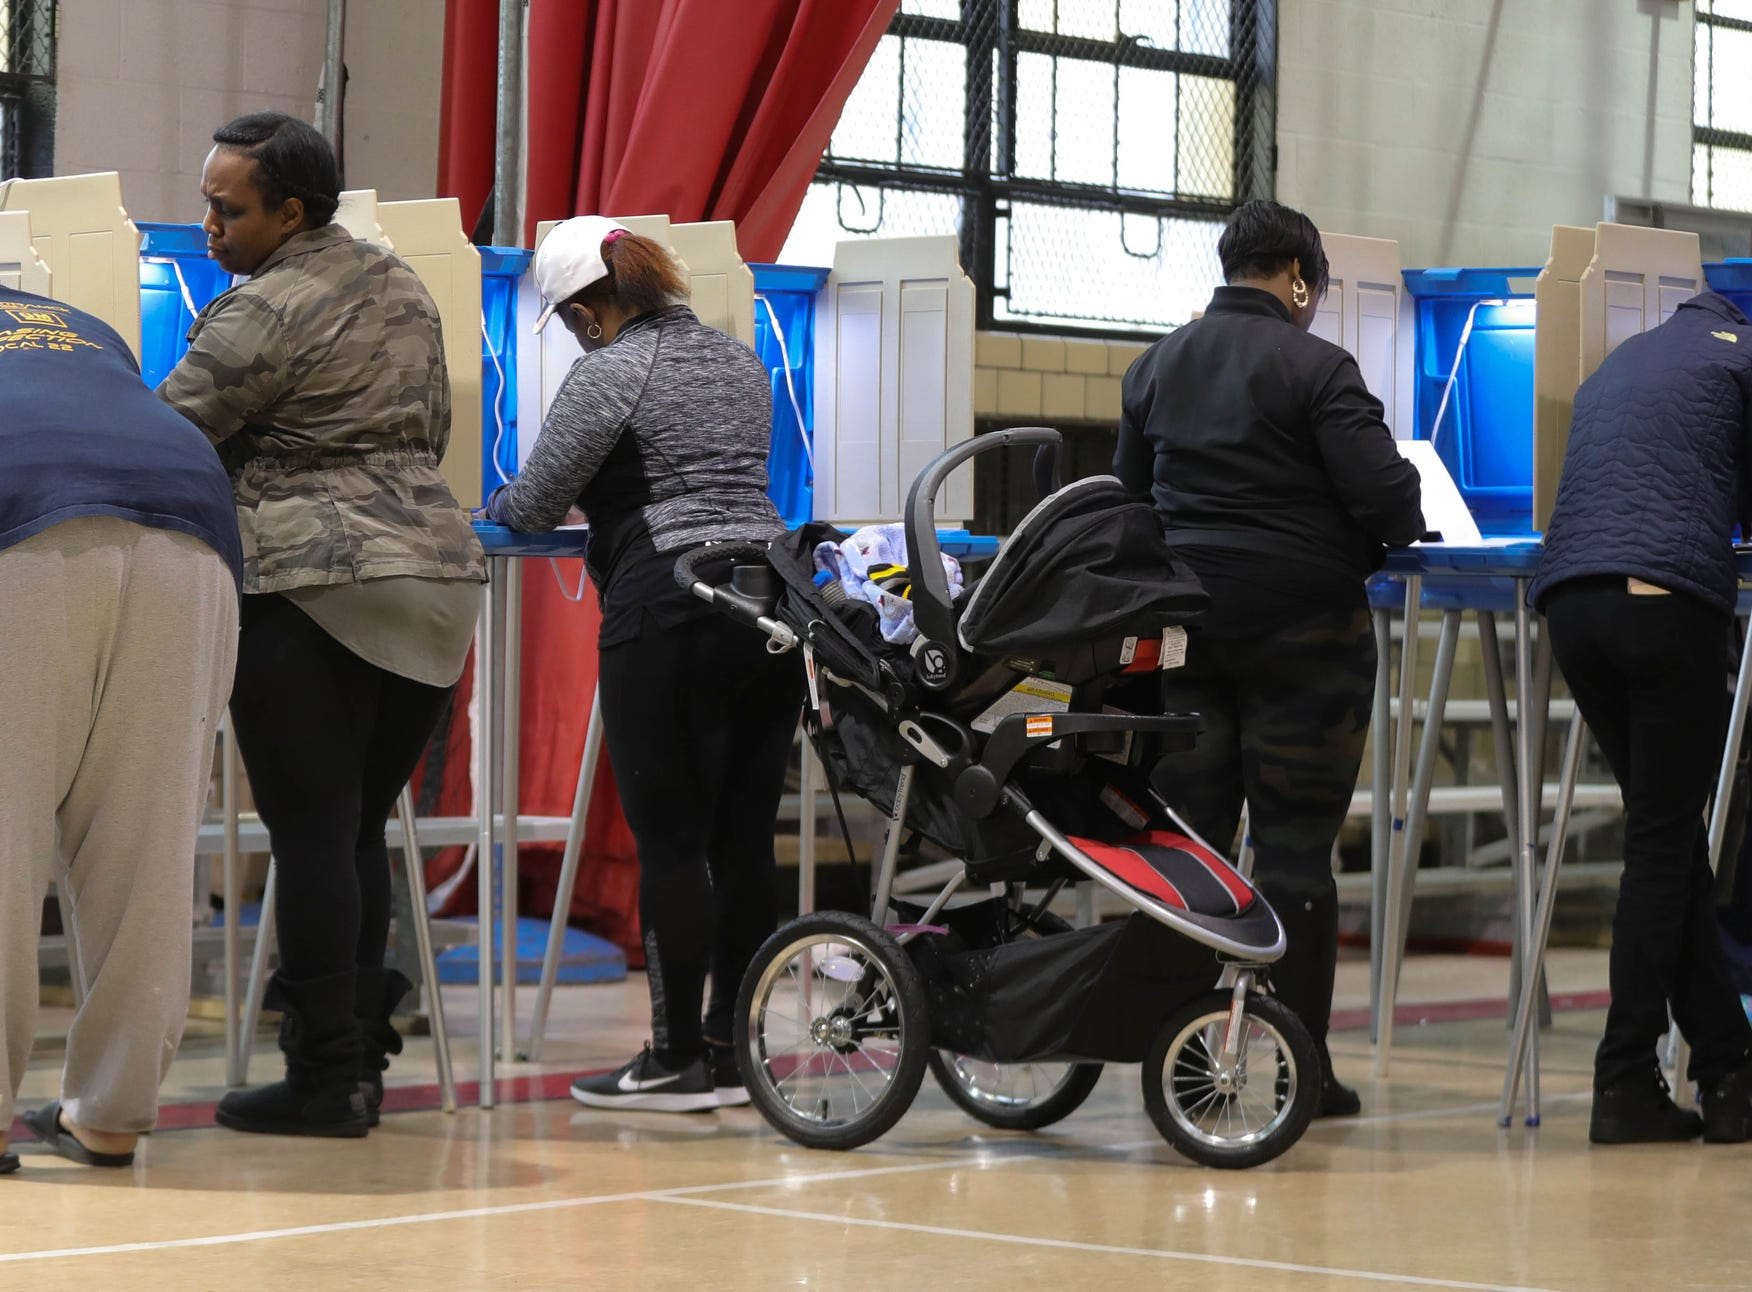 Residents cast their votes on Tuesday, Nov. 6, 2018 at the 7th precinct in Eastpointe, Mich.